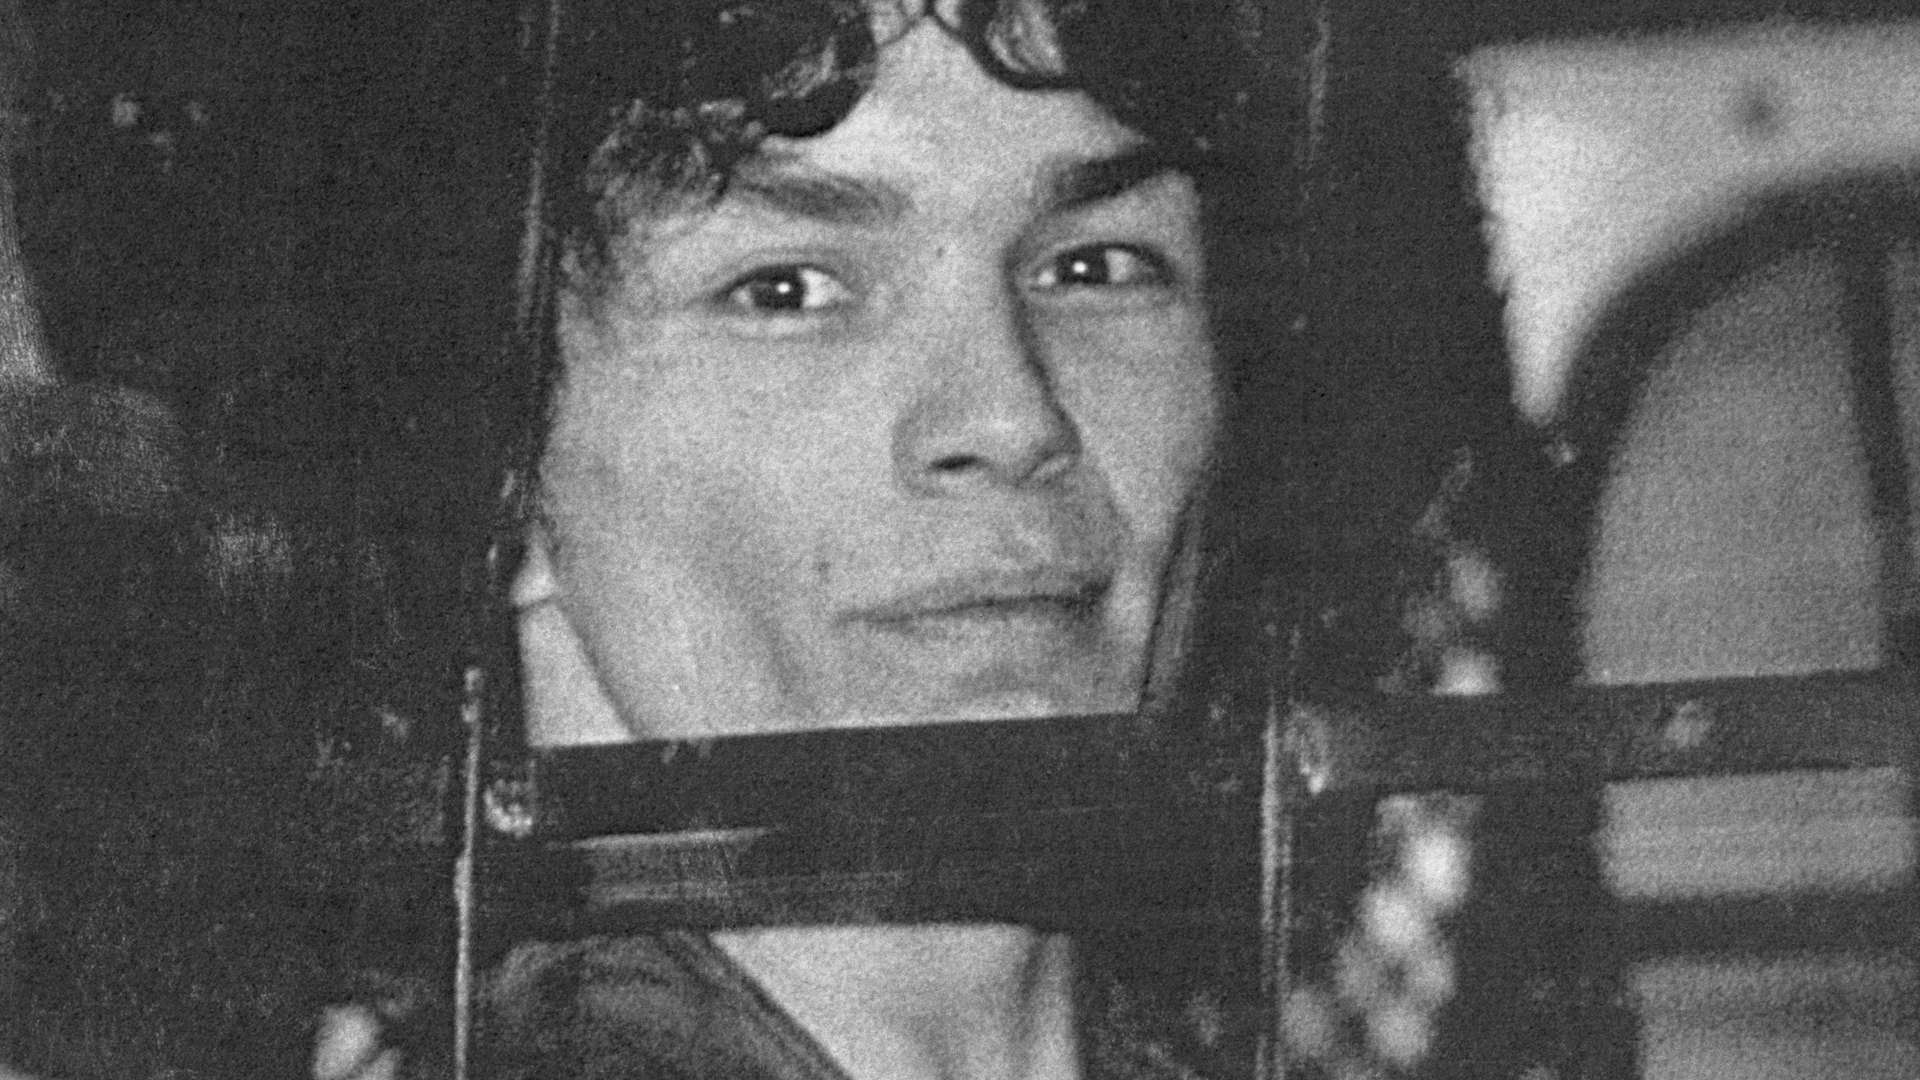 Richard Ramirez's Death: What Were the Final Days of the 'Night Stalker' Like?